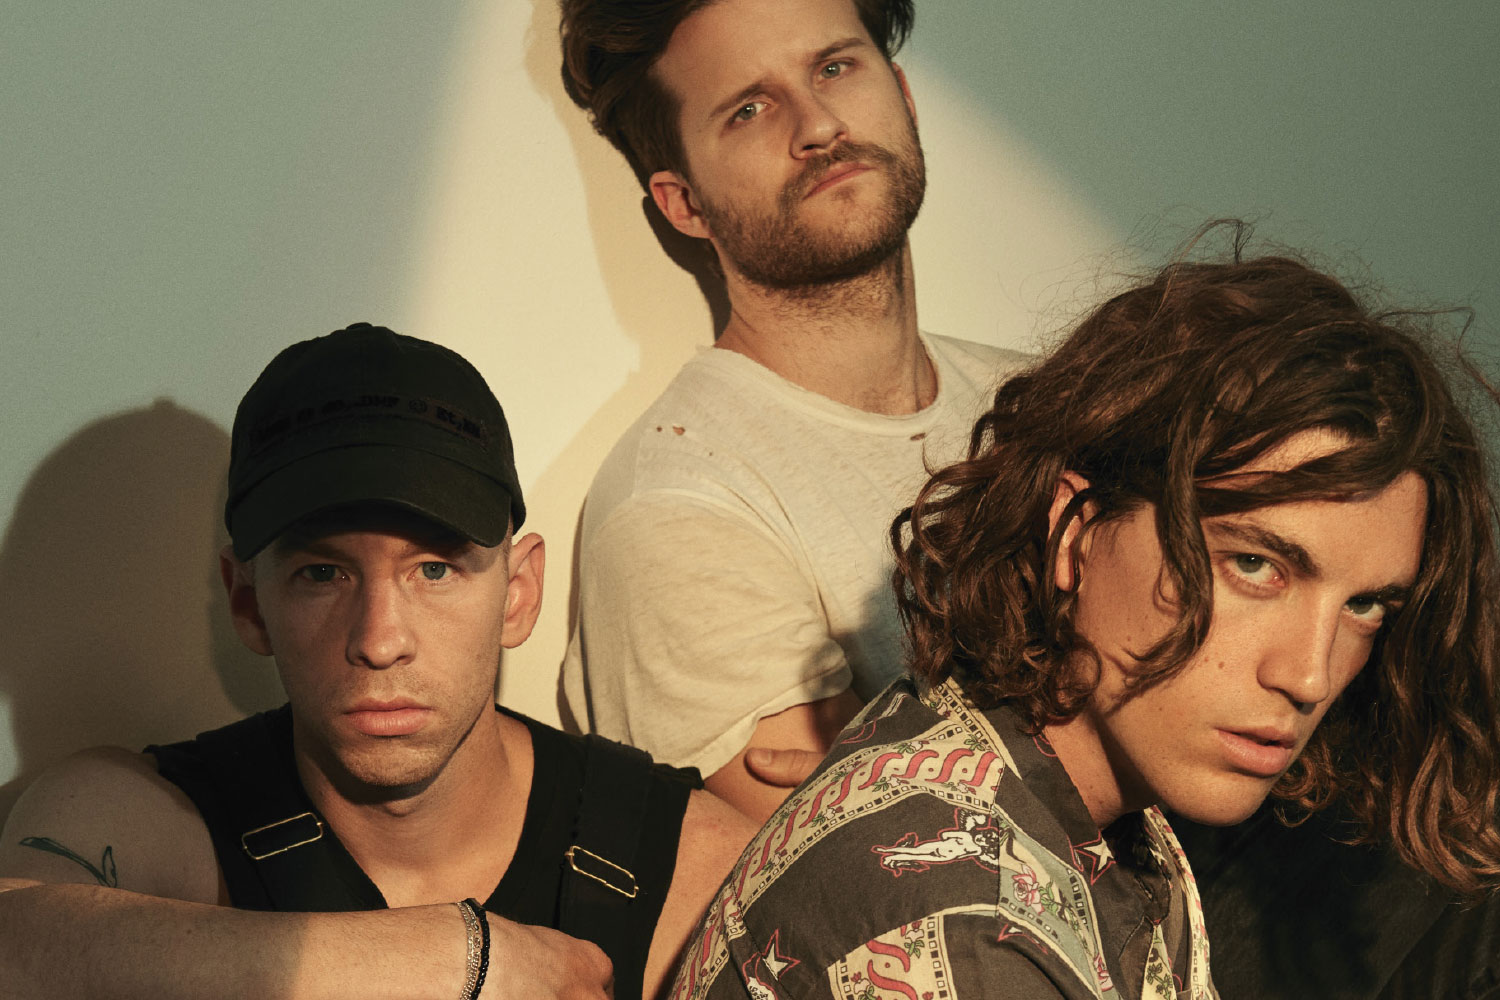 Dream pop band LANY headed for Asia tour in 2018!